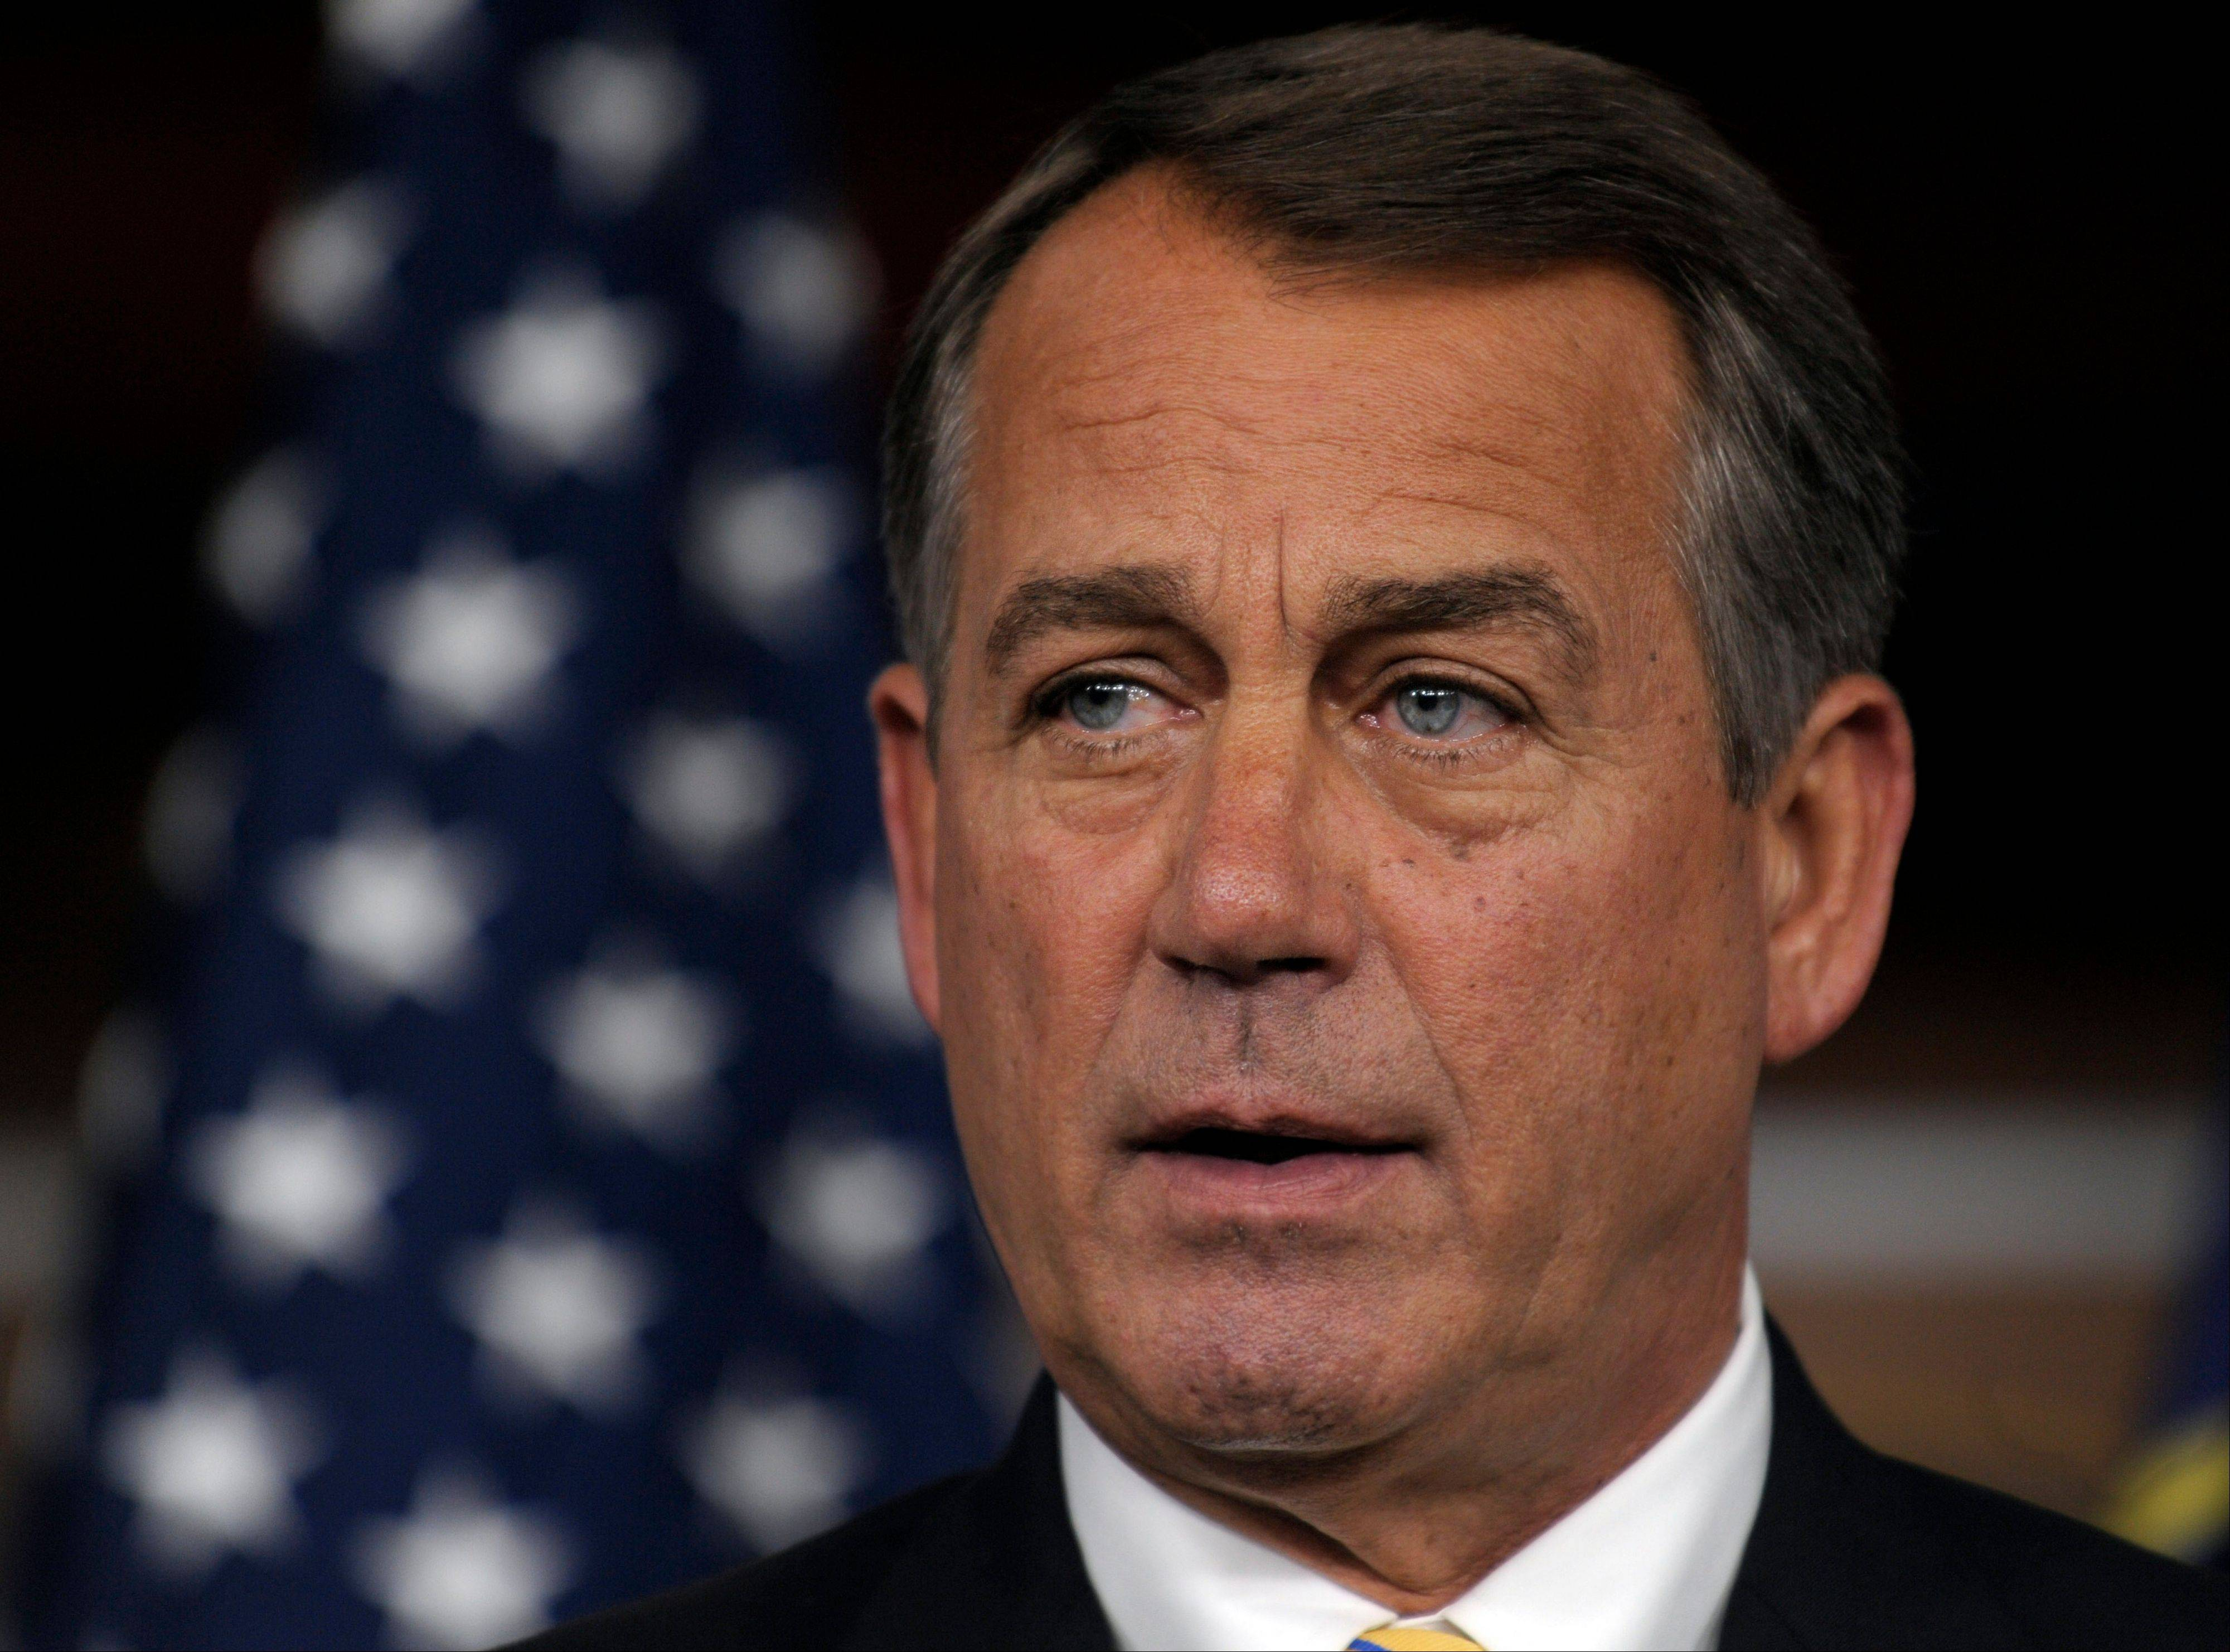 House Speaker John Boehner of Ohio speaks a news conference on Capitol Hill Thursday. Later in the day, he was involved in face-to-face talks with President Obama to hammer out a debt agreement.